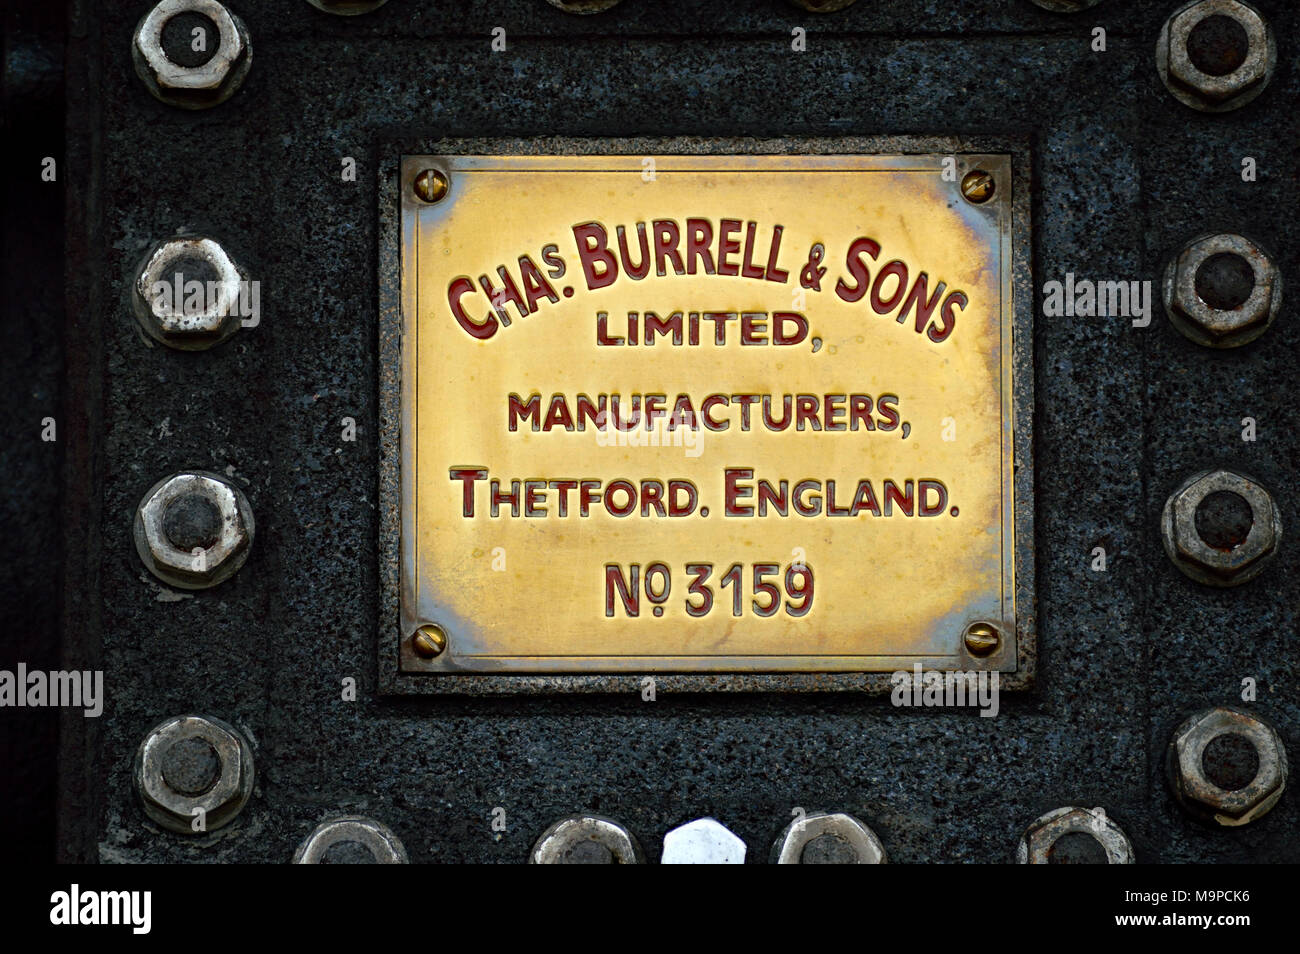 Steam engine name plate (Chas Burrell & Sons No.3159 Stock Photo - Alamy